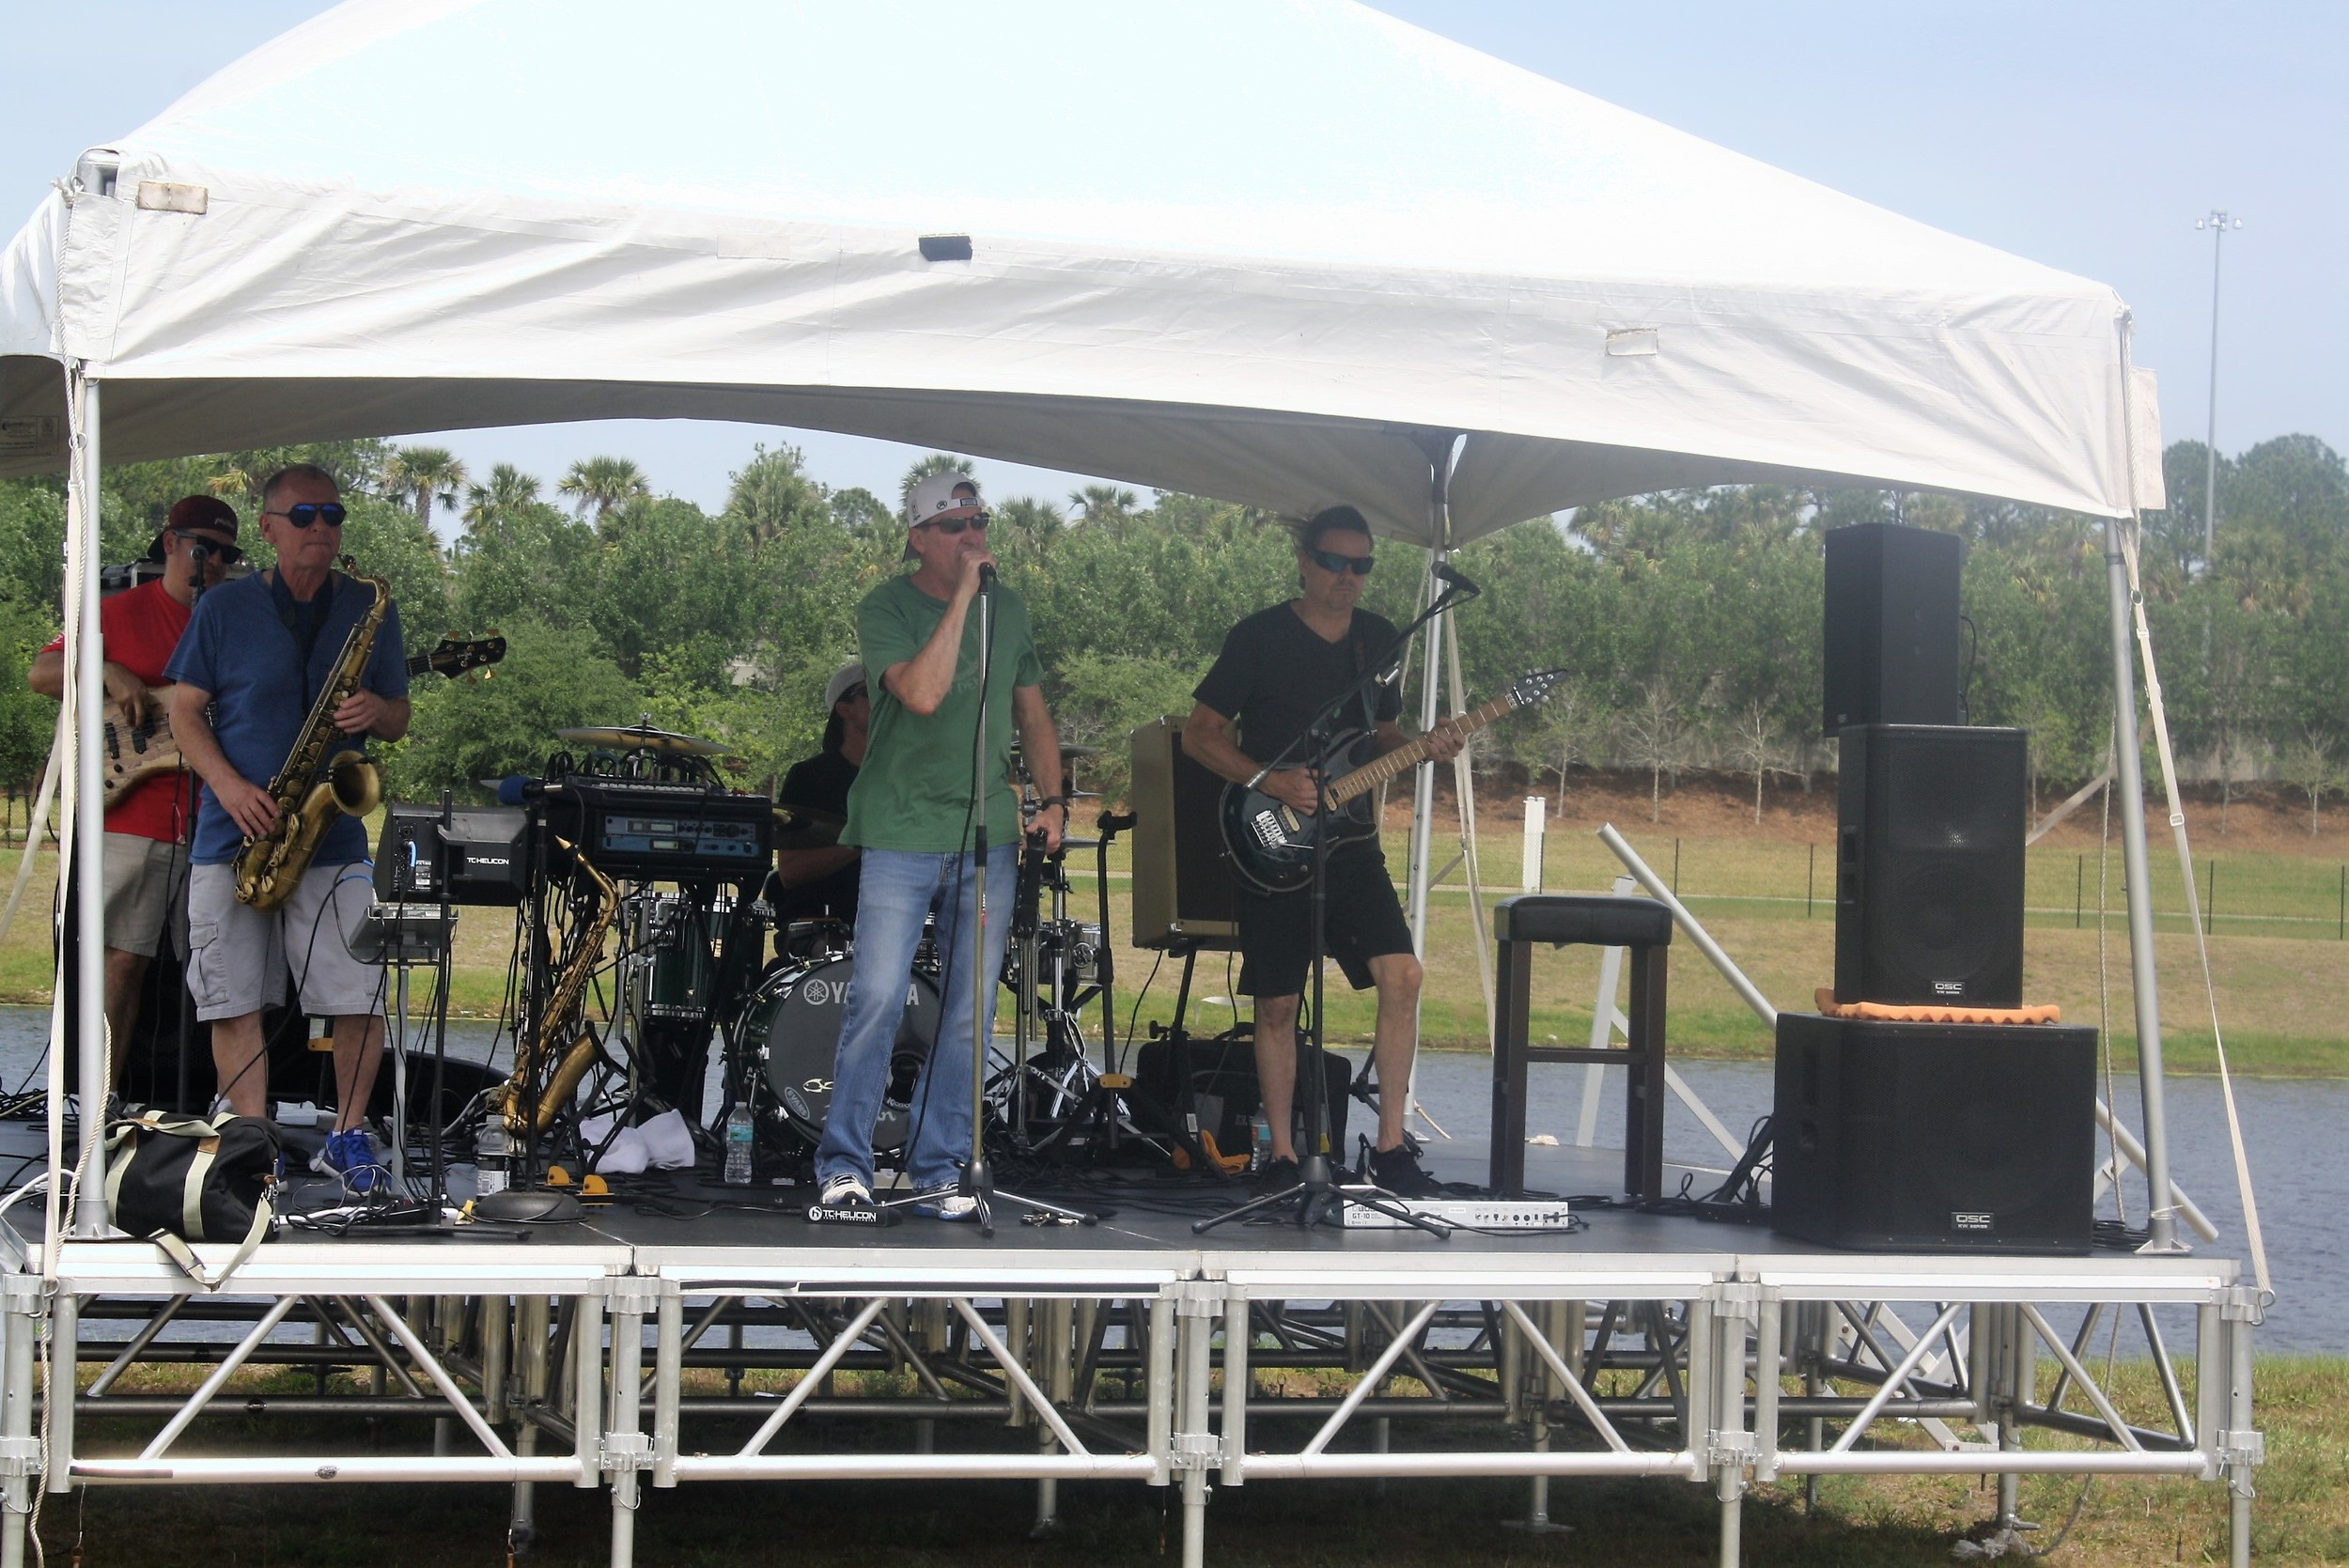 The Paul Lundgren Band entertains guests at the Nocatee Farmers Market.